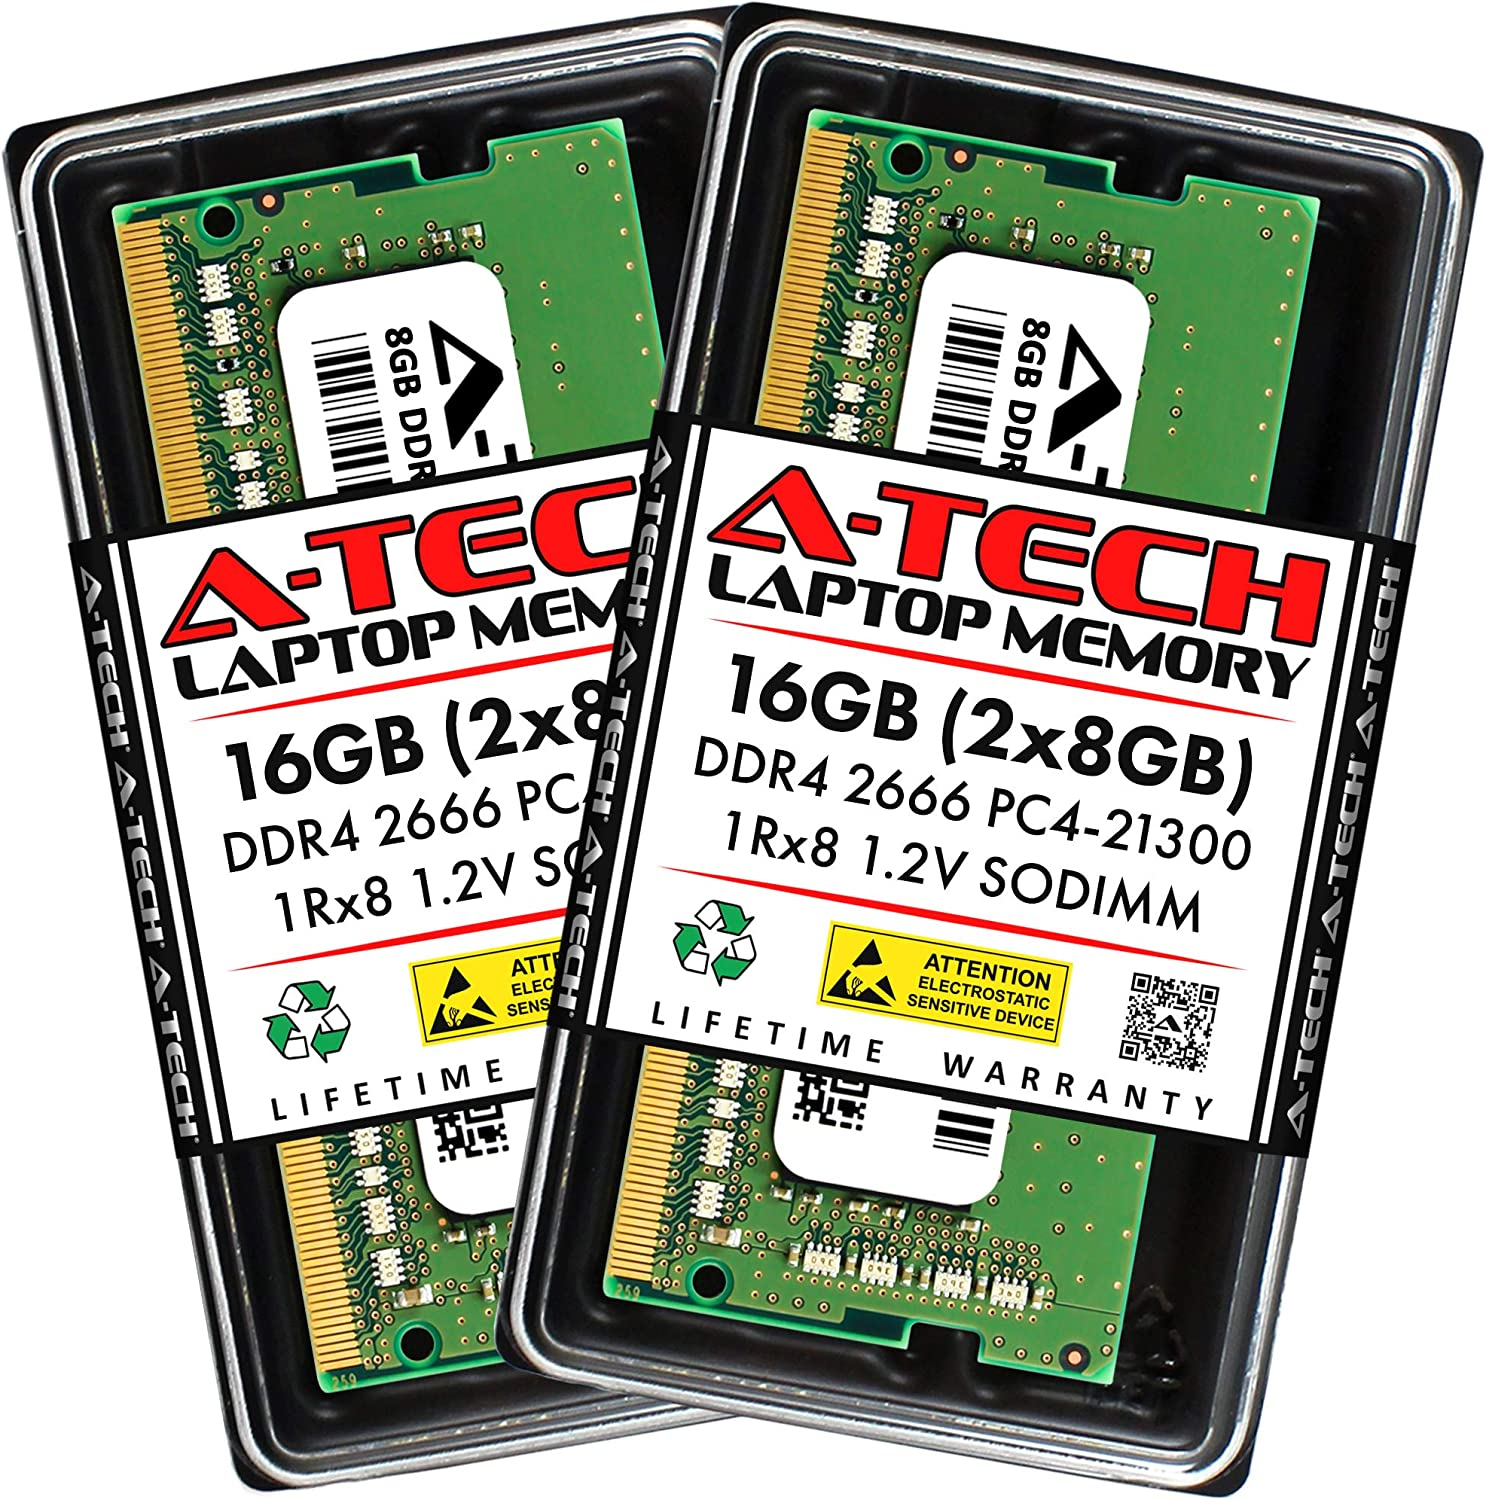 A-Tech 16GB (2x8GB) DDR4 2666MHz SODIMM PC4-21300 1Rx8 Single Rank 260-Pin CL19 1.2V Non-ECC Unbuffered Notebook Laptop RAM Memory Upgrade Kit